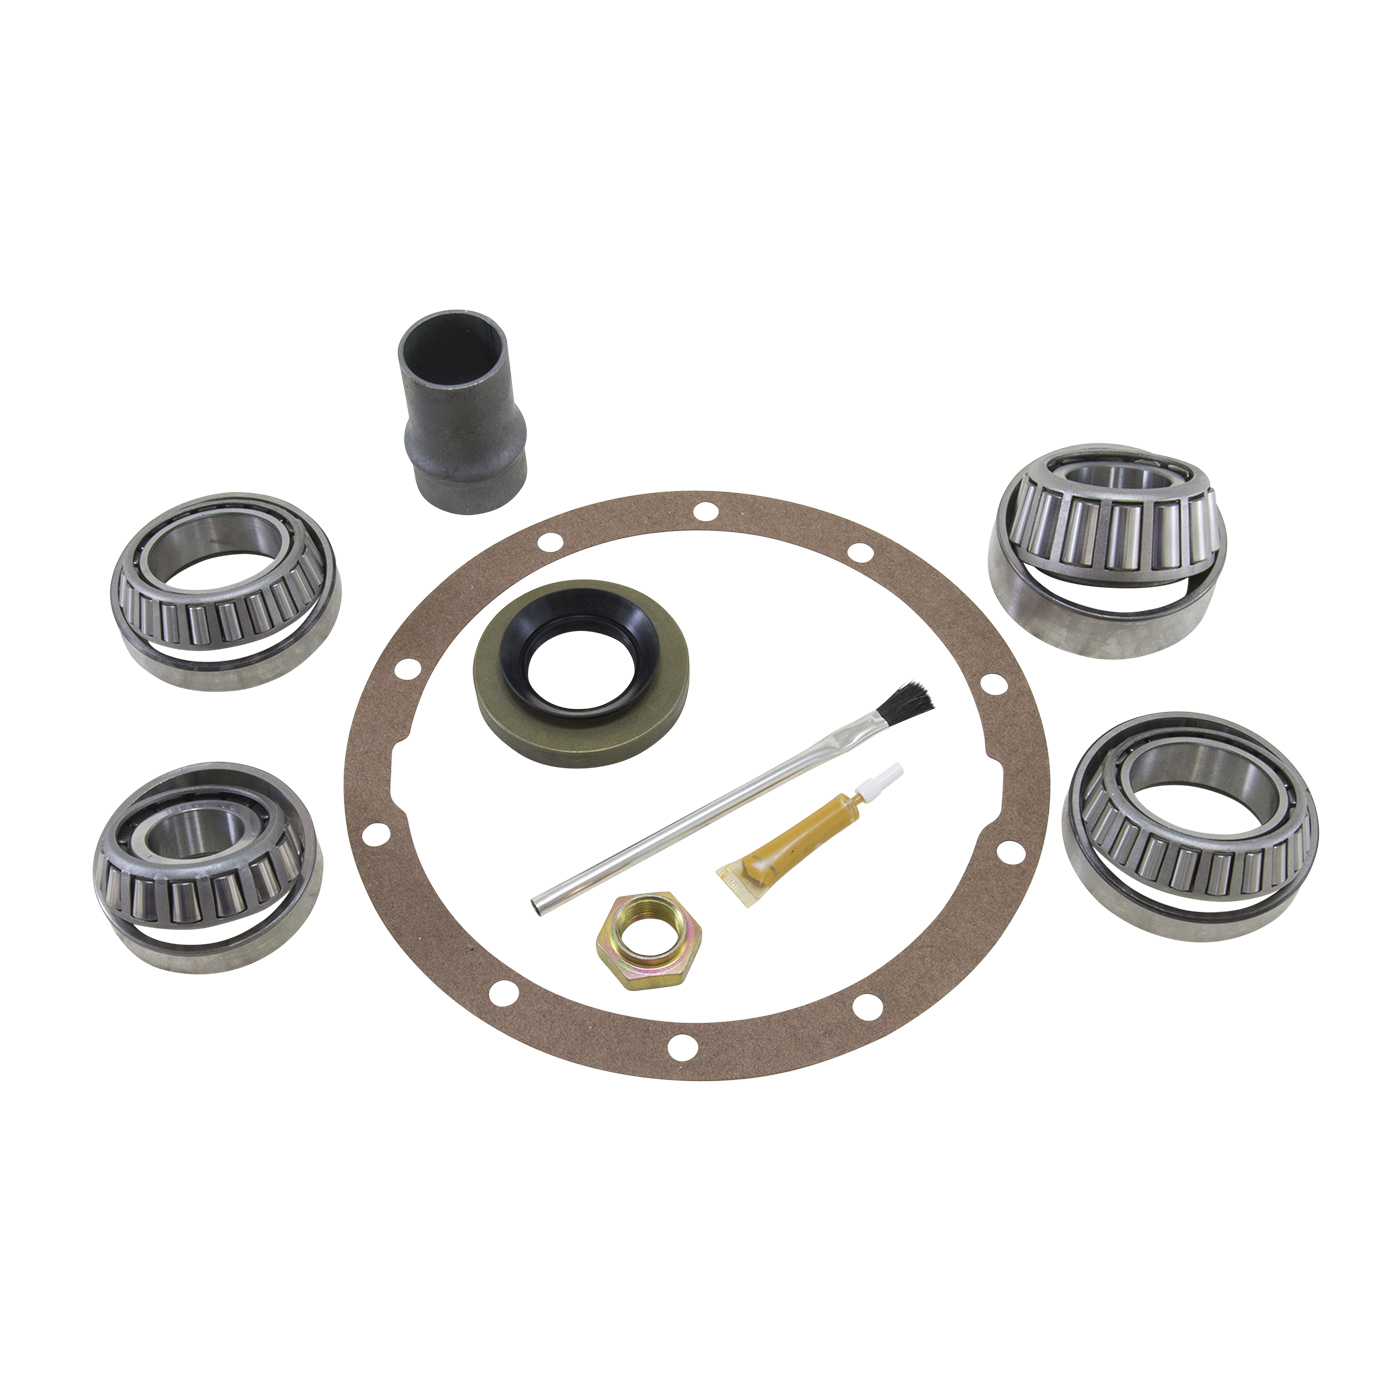 BK T8-C - Yukon bearing kit for '85 & down Toyota 8